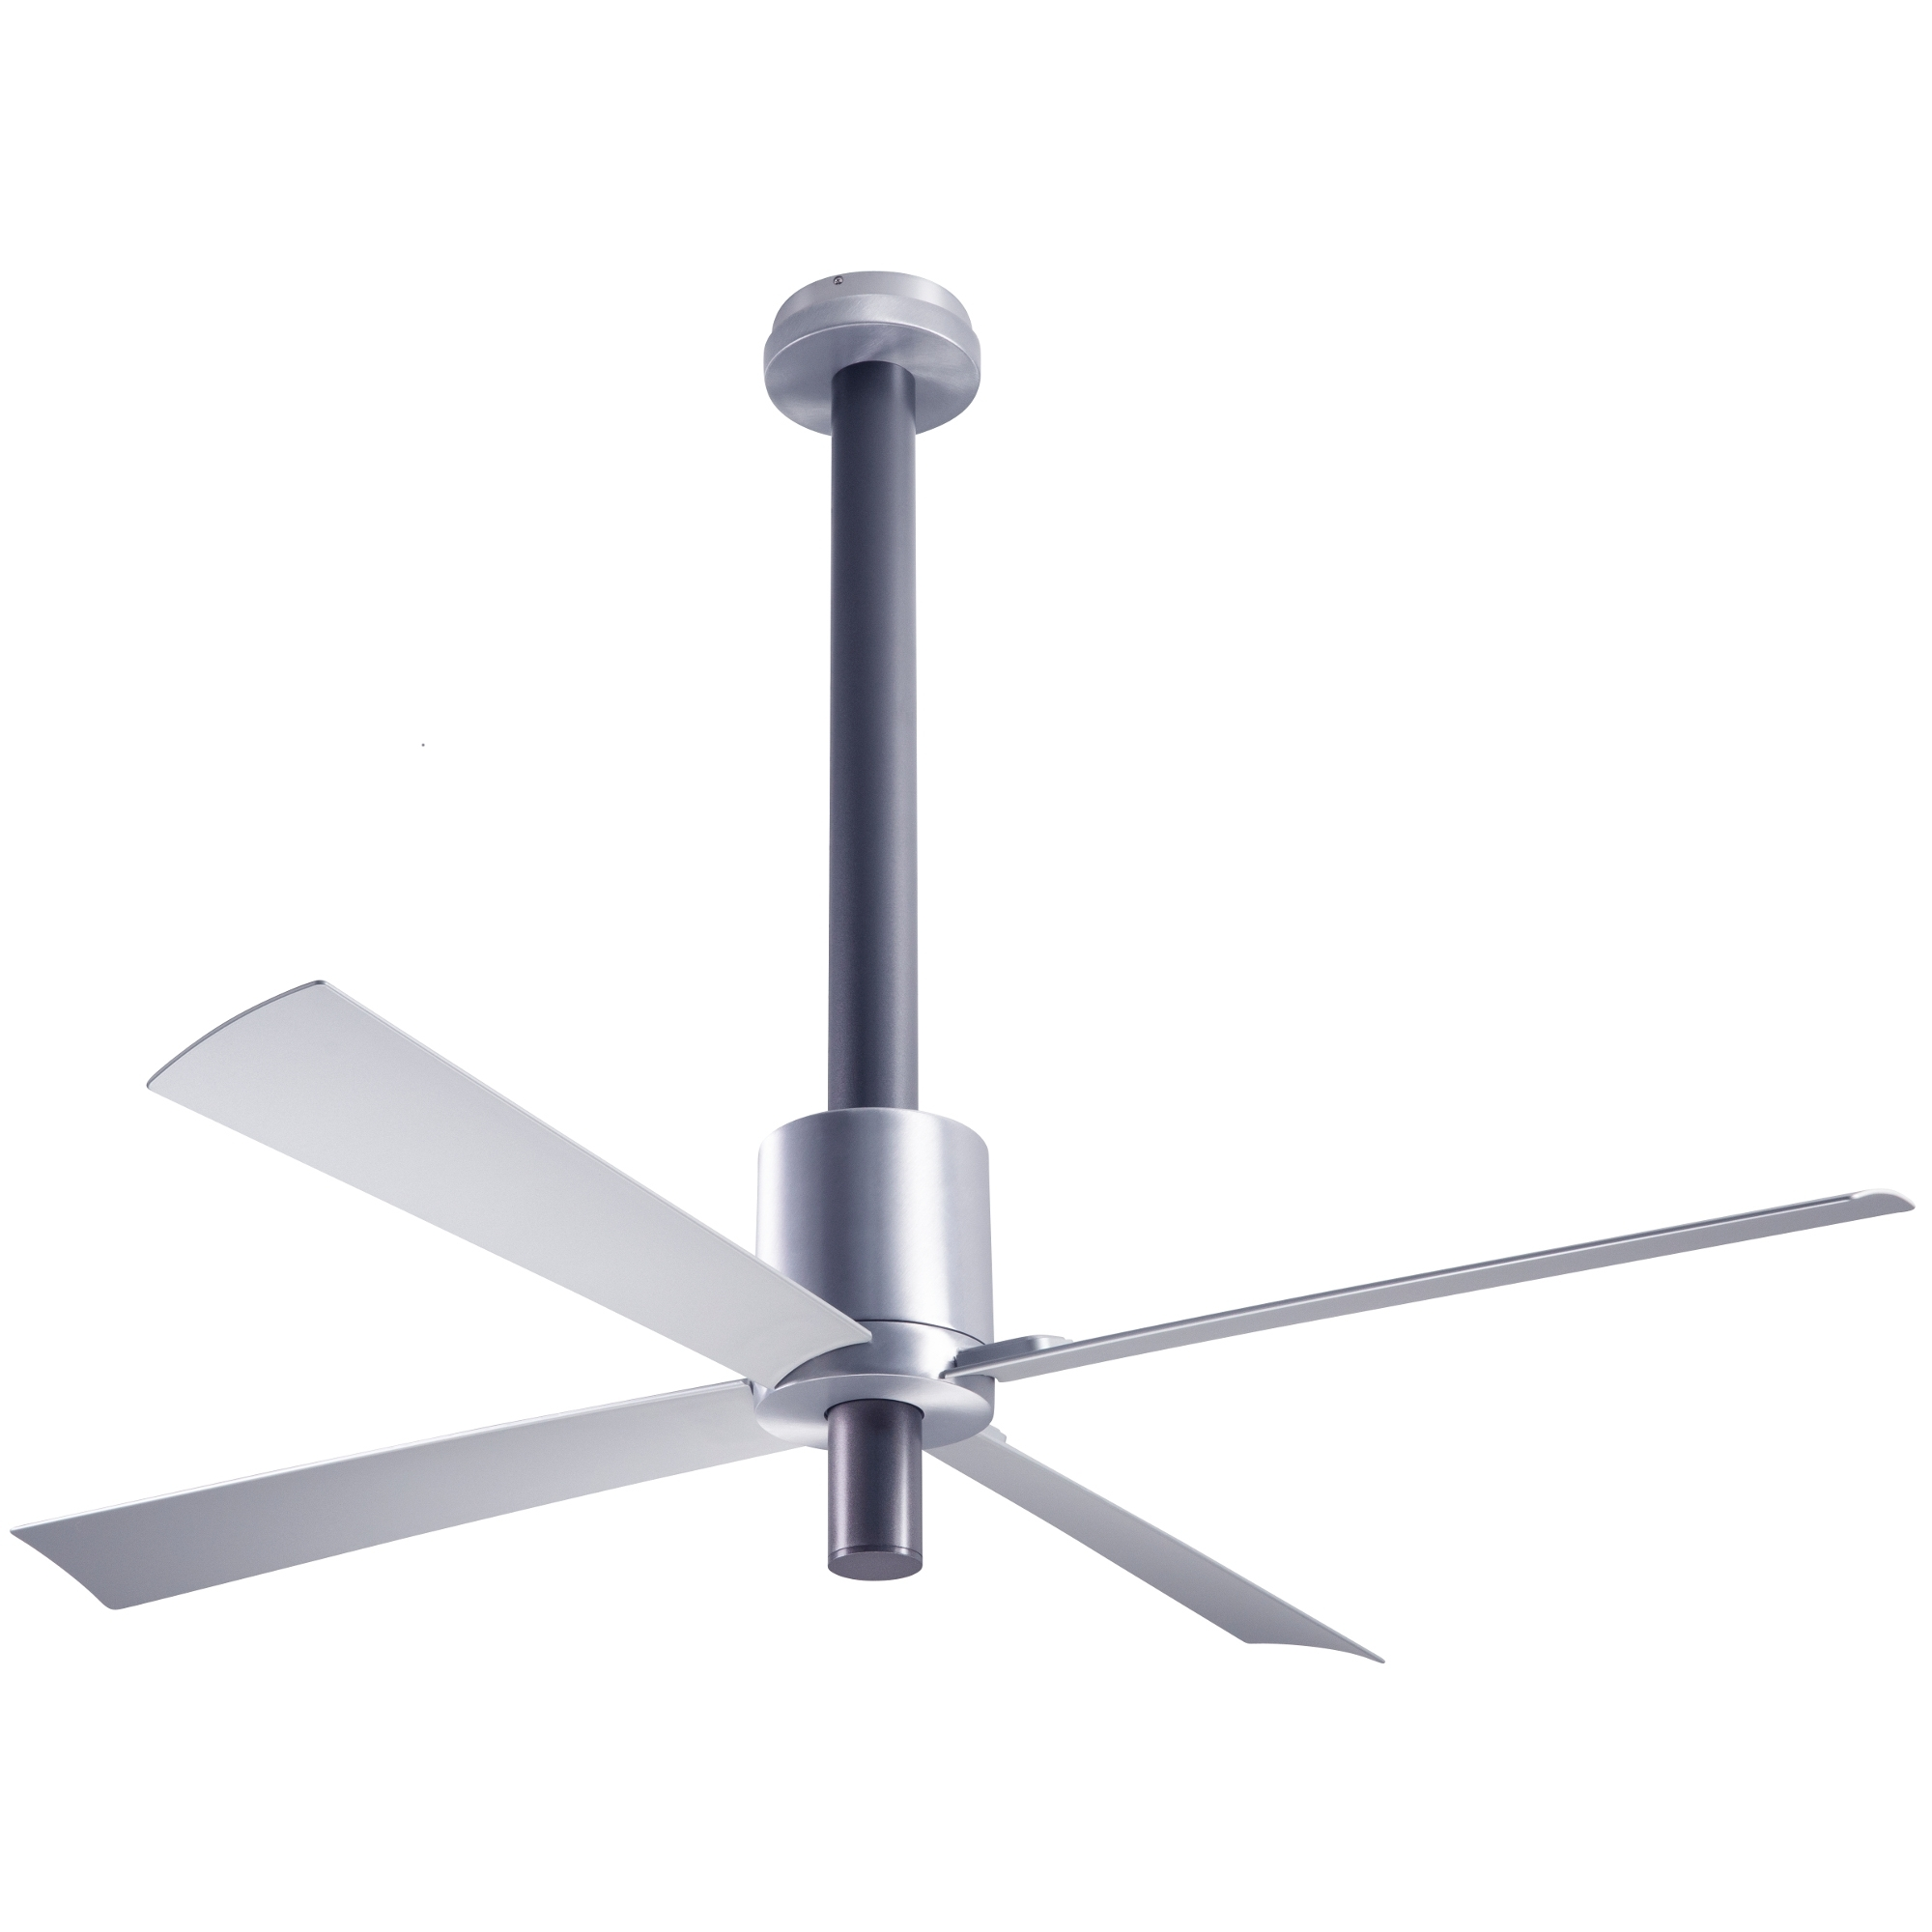 Modern Outdoor Ceiling Fans For Well Known Pensi Outdoor Ceiling Fanmodern Fan Co (View 10 of 20)